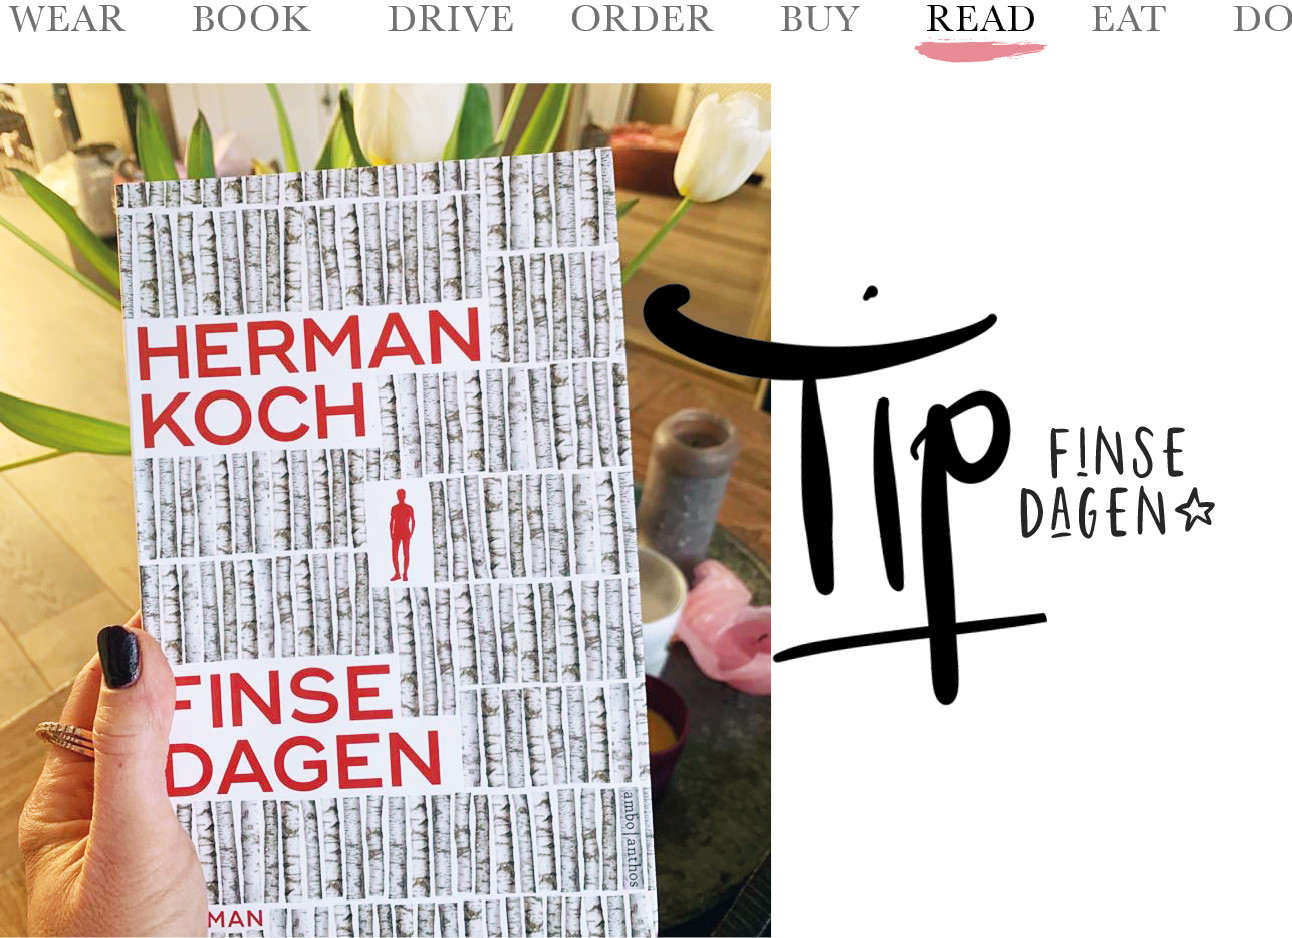 Today we fInse Dagen Herman Koch boek